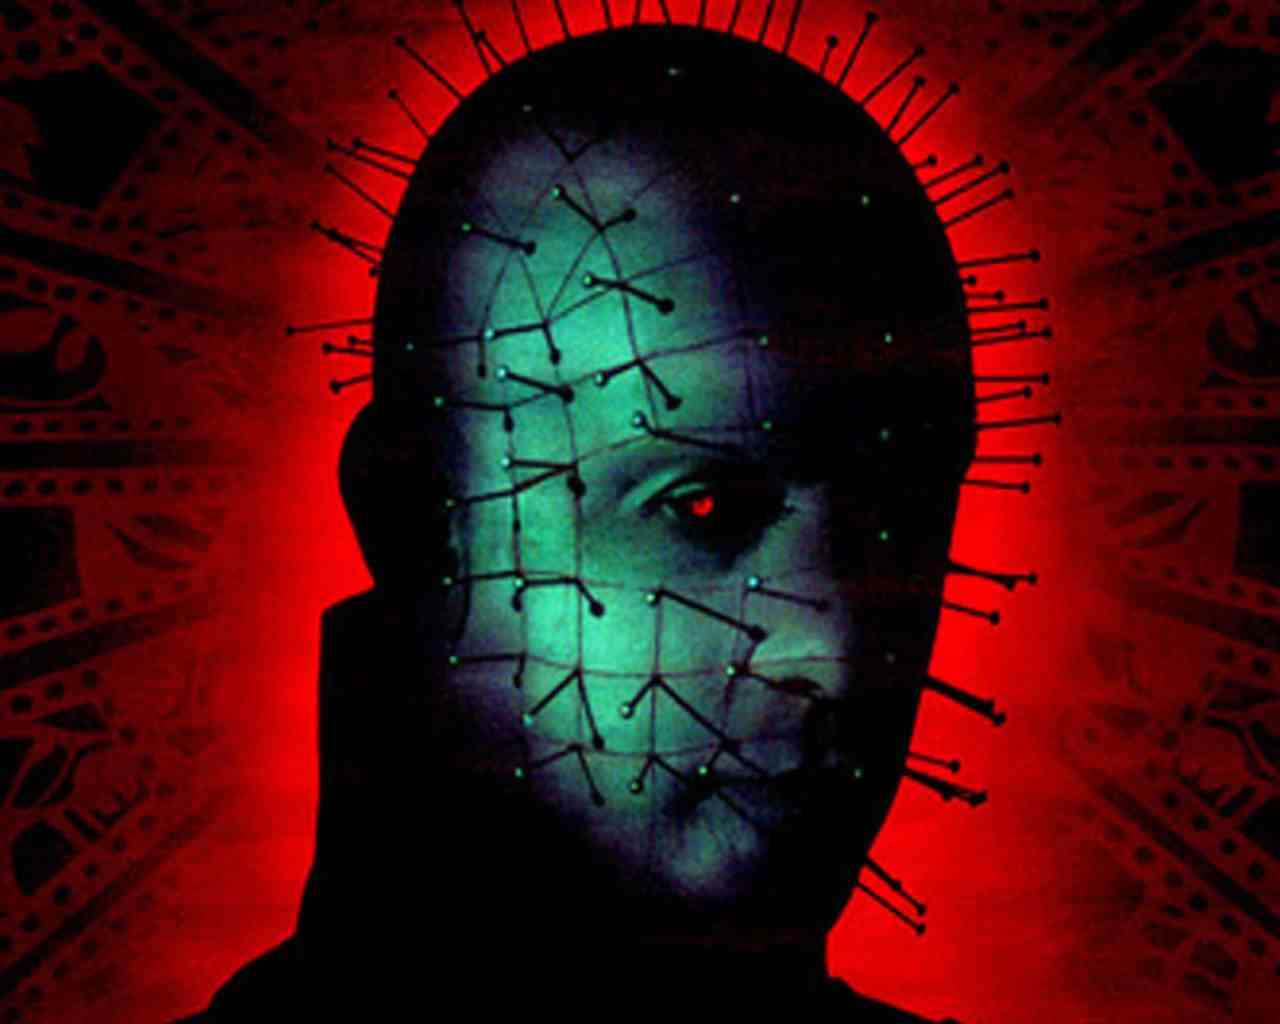 pinhead - Pinhead Photo (25432739) - Fanpop